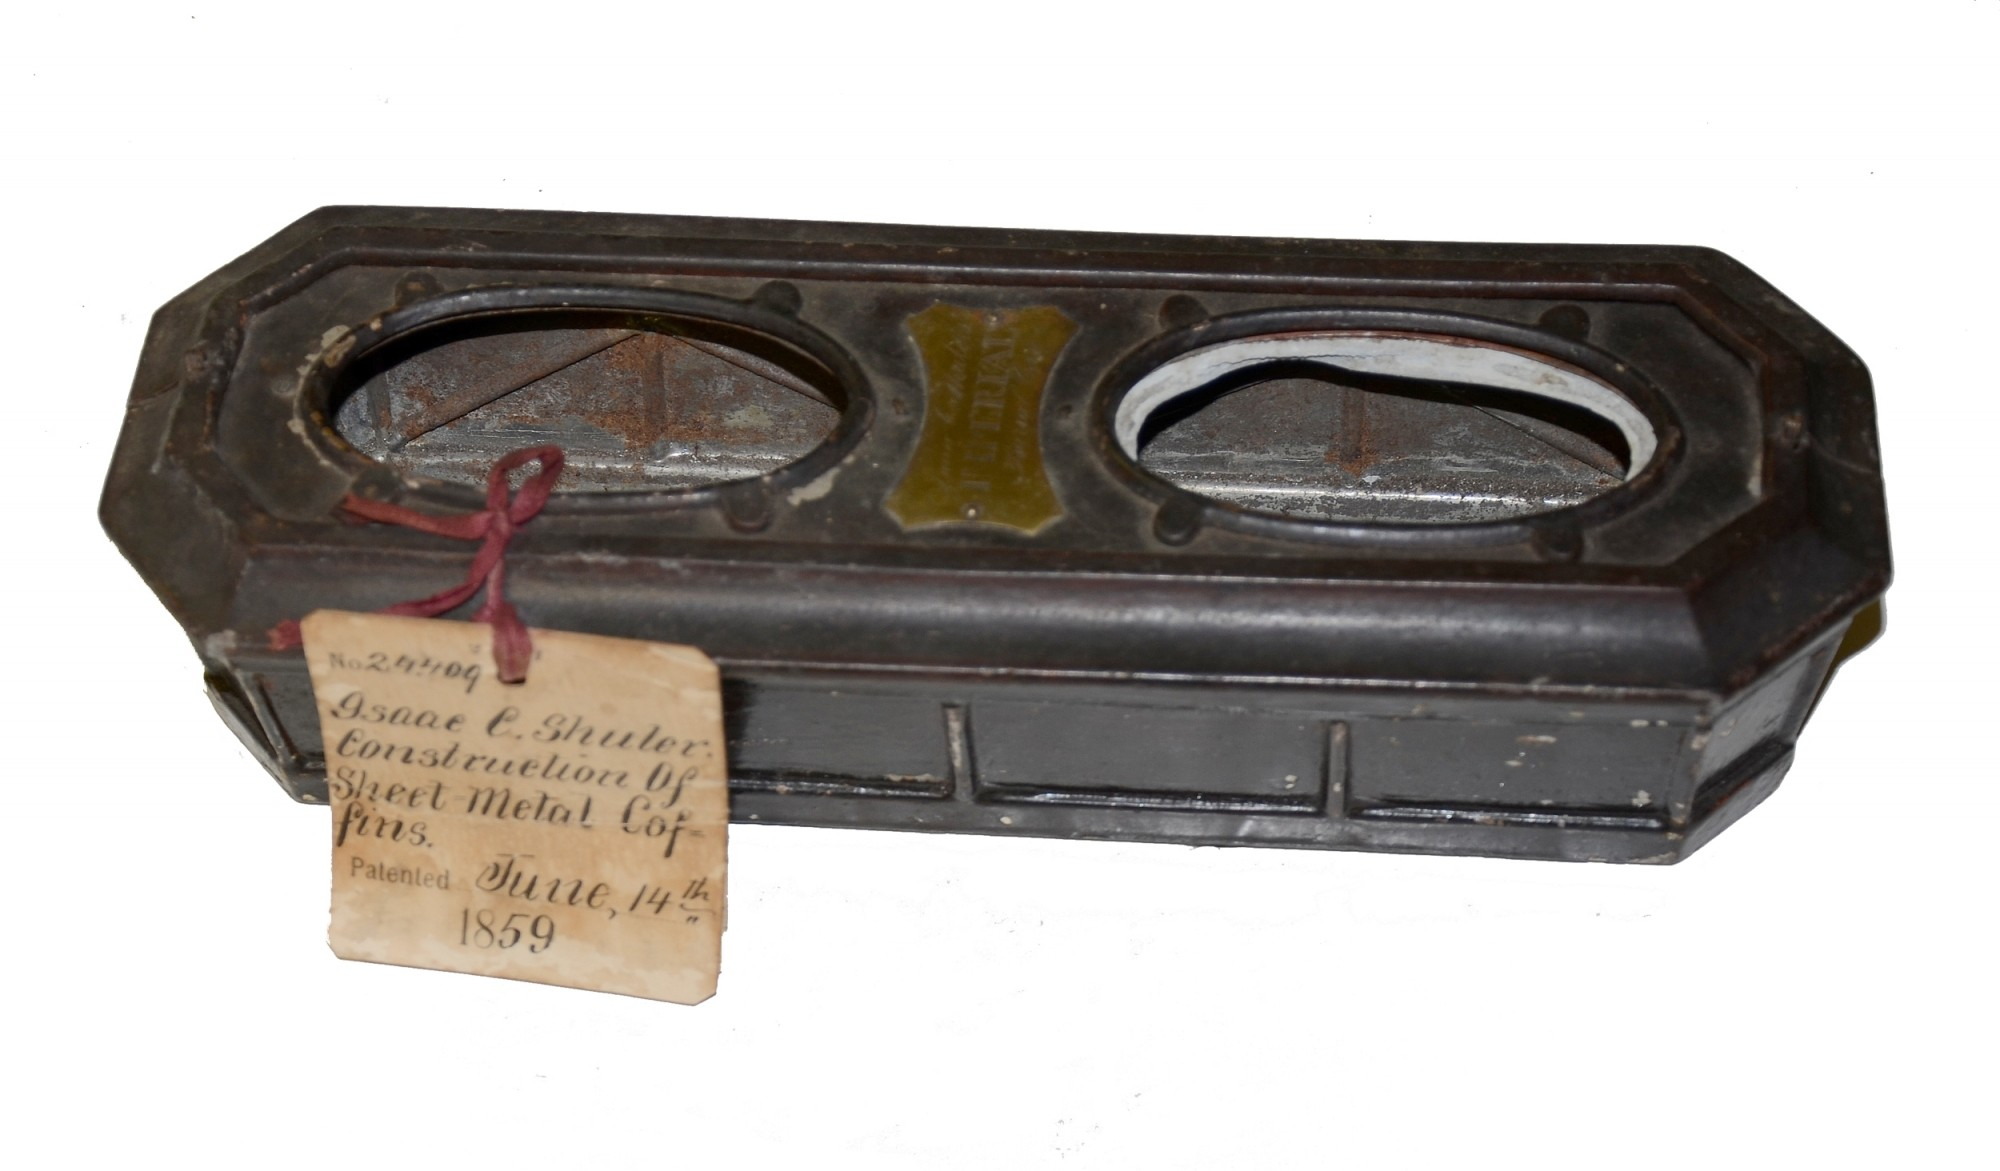 COFFIN MODEL BY ISAAC C. SHULER, DATED 1859